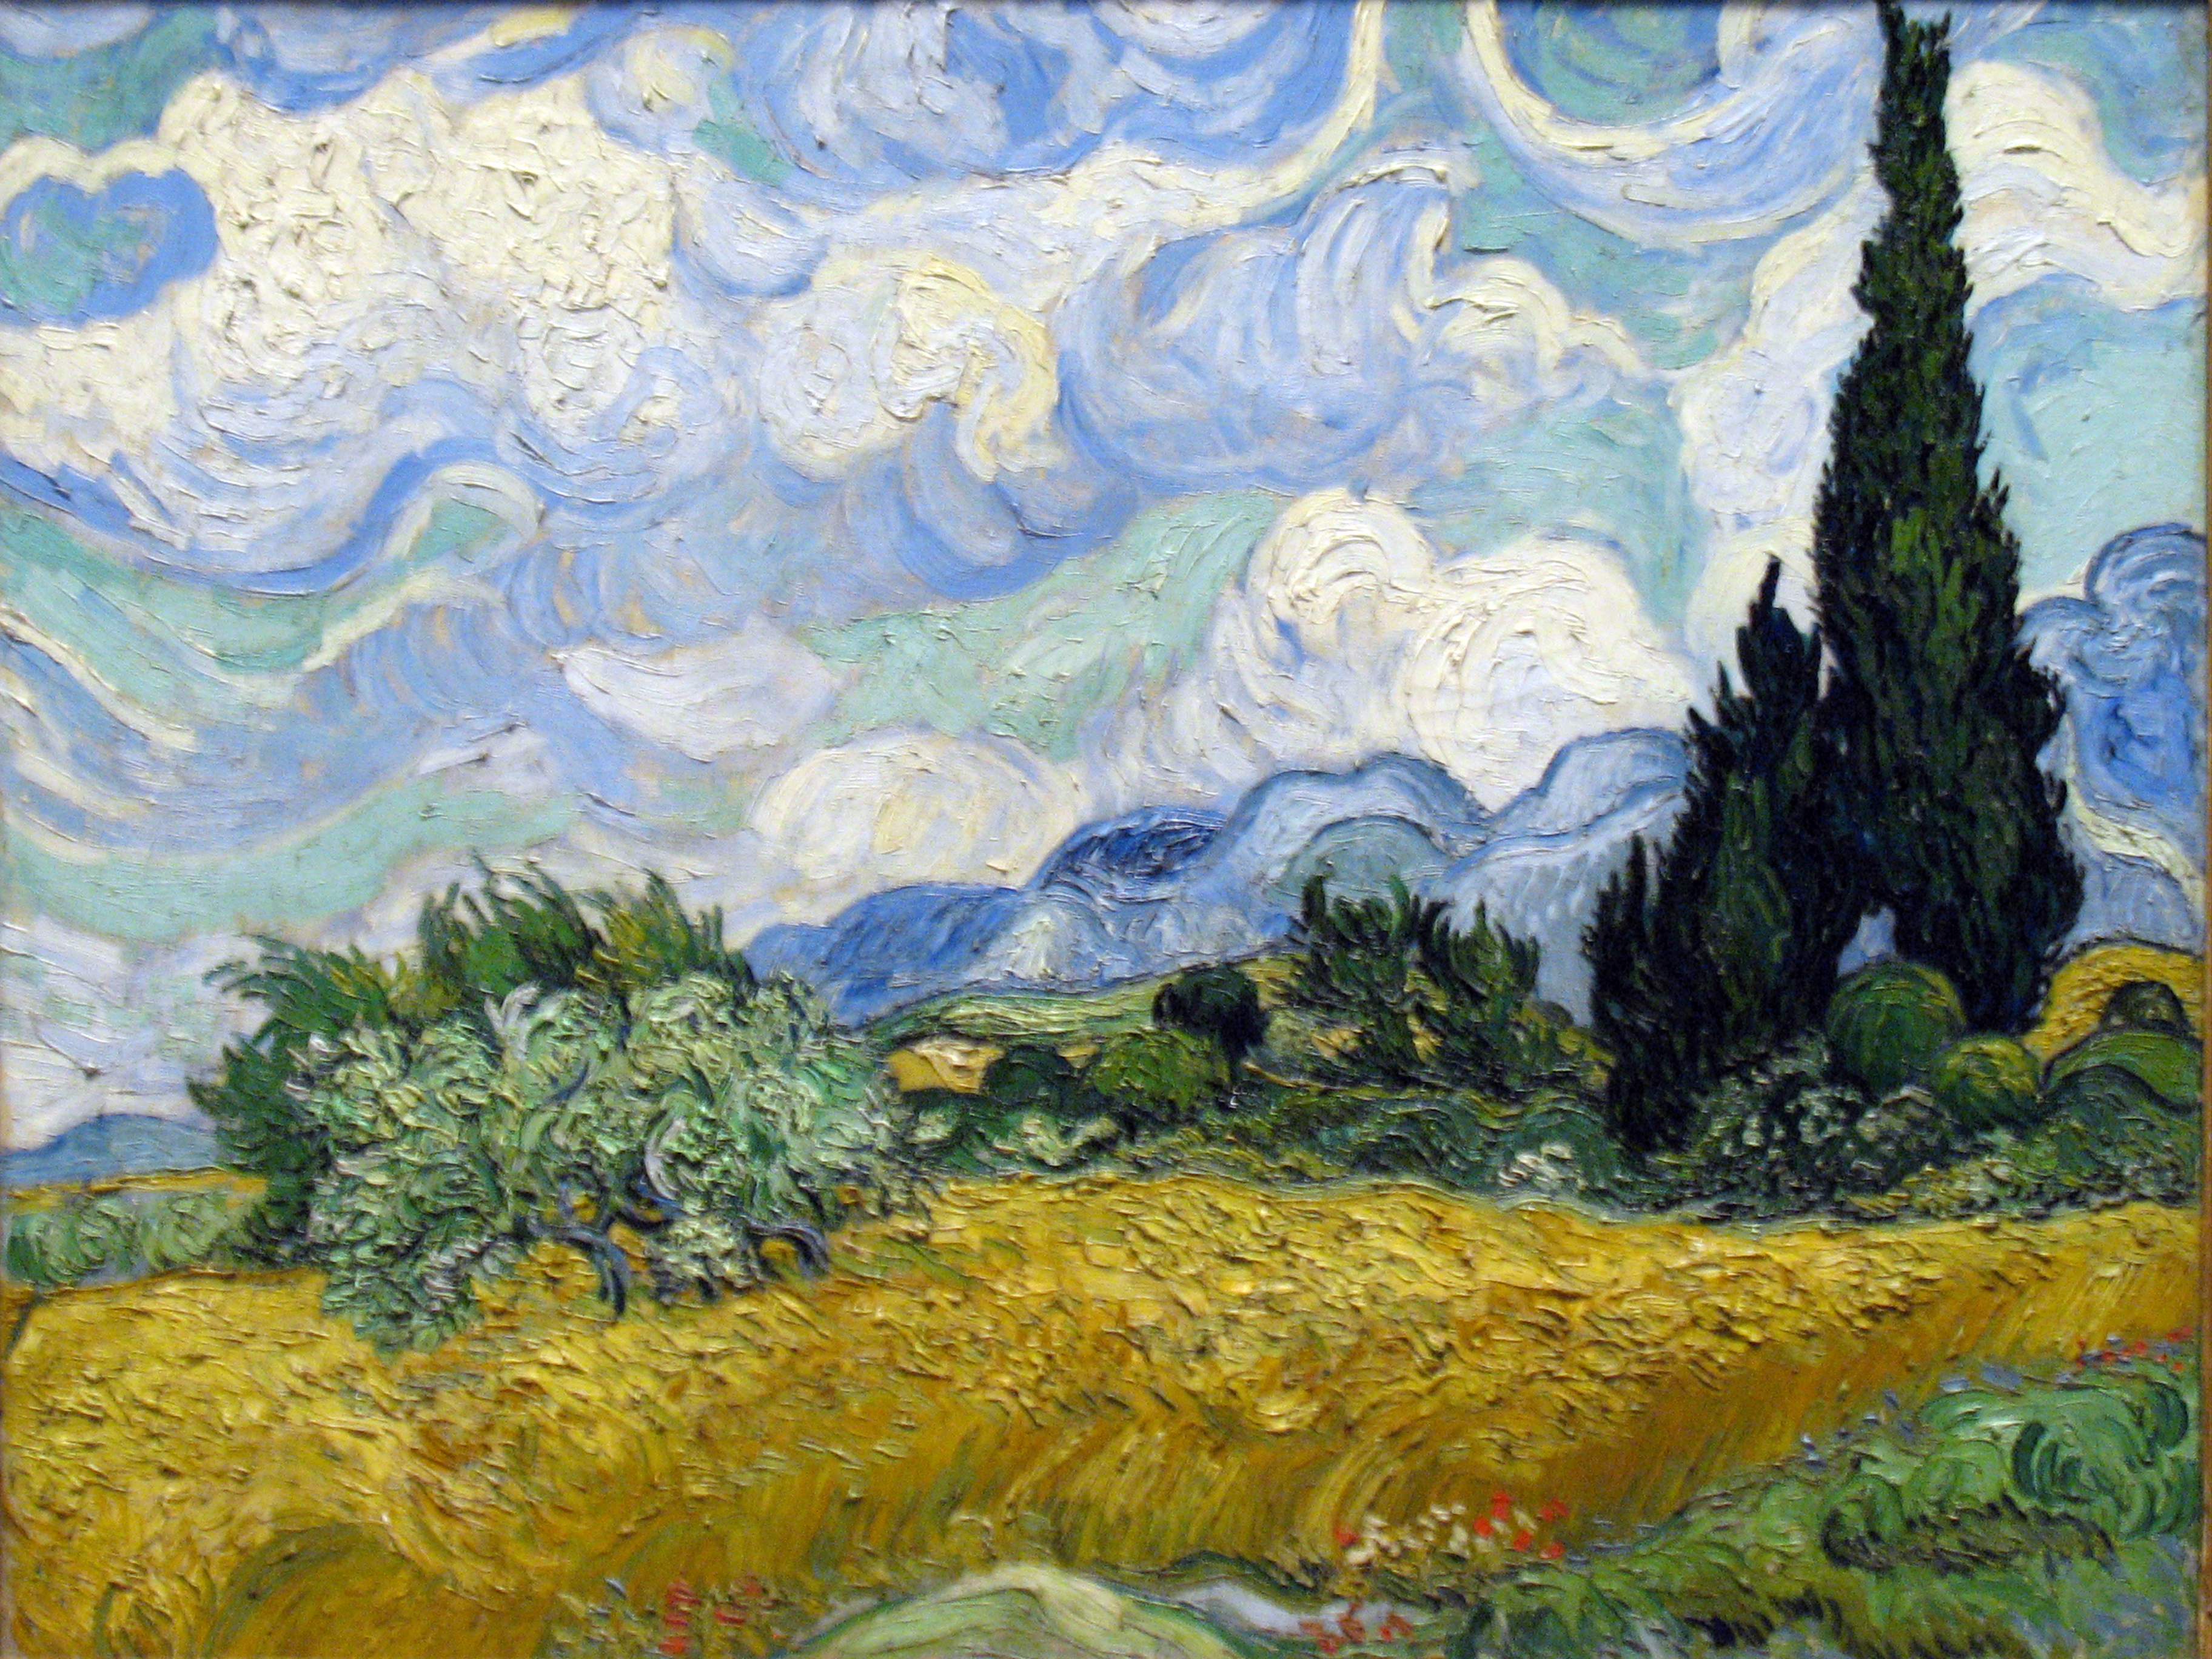 File:1889 van Gogh Wheatfield with cypresses anagoria.JPG